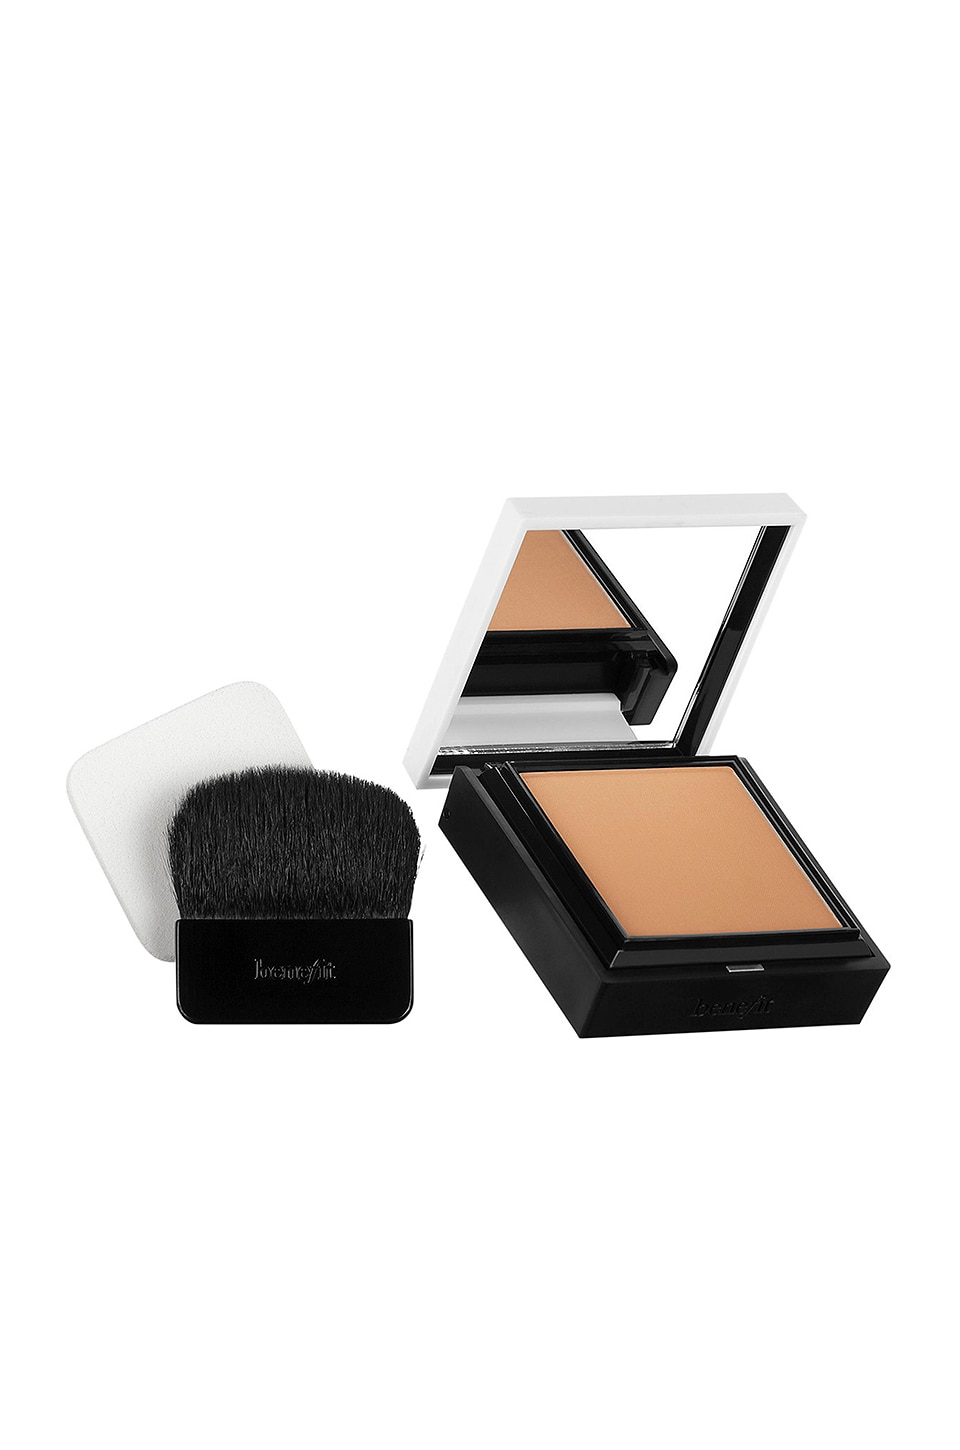 Benefit Cosmetics Hello Flawless! Powder Foundation in Toasted Beige What I Crave